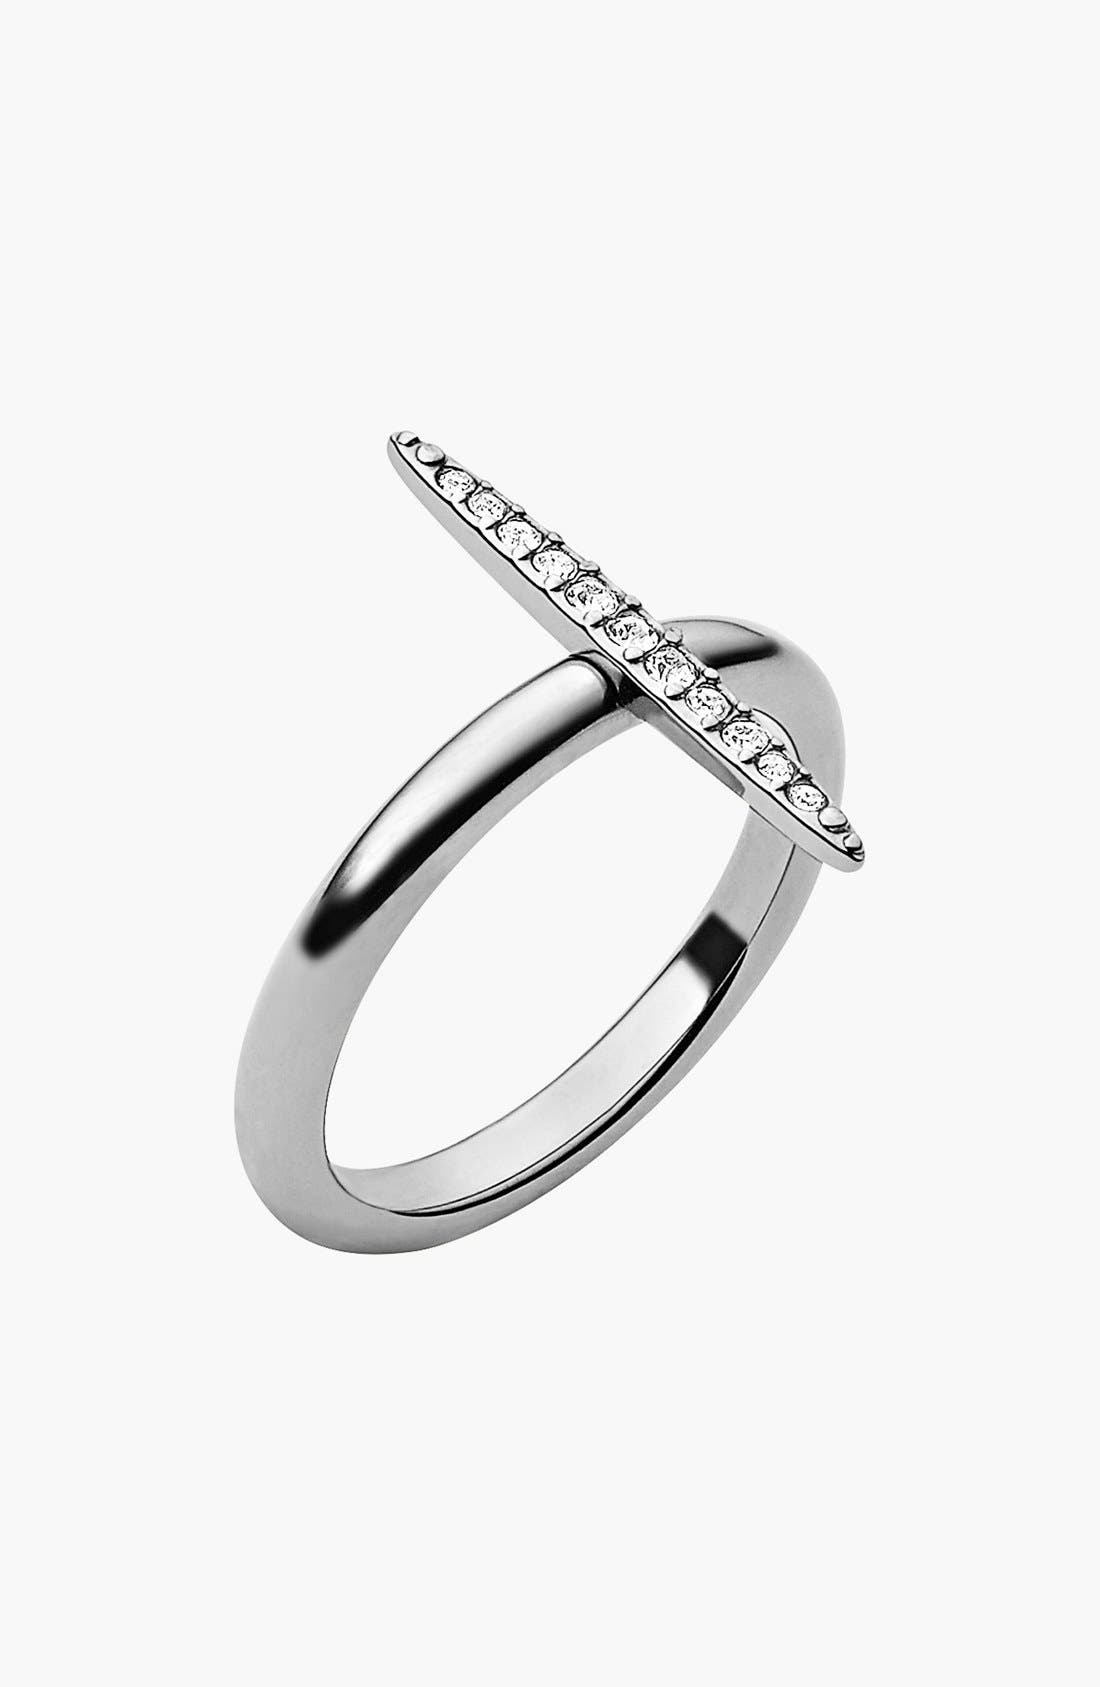 Michael Kors 'Matchstick' Pavé Ring,                         Main,                         color, 040